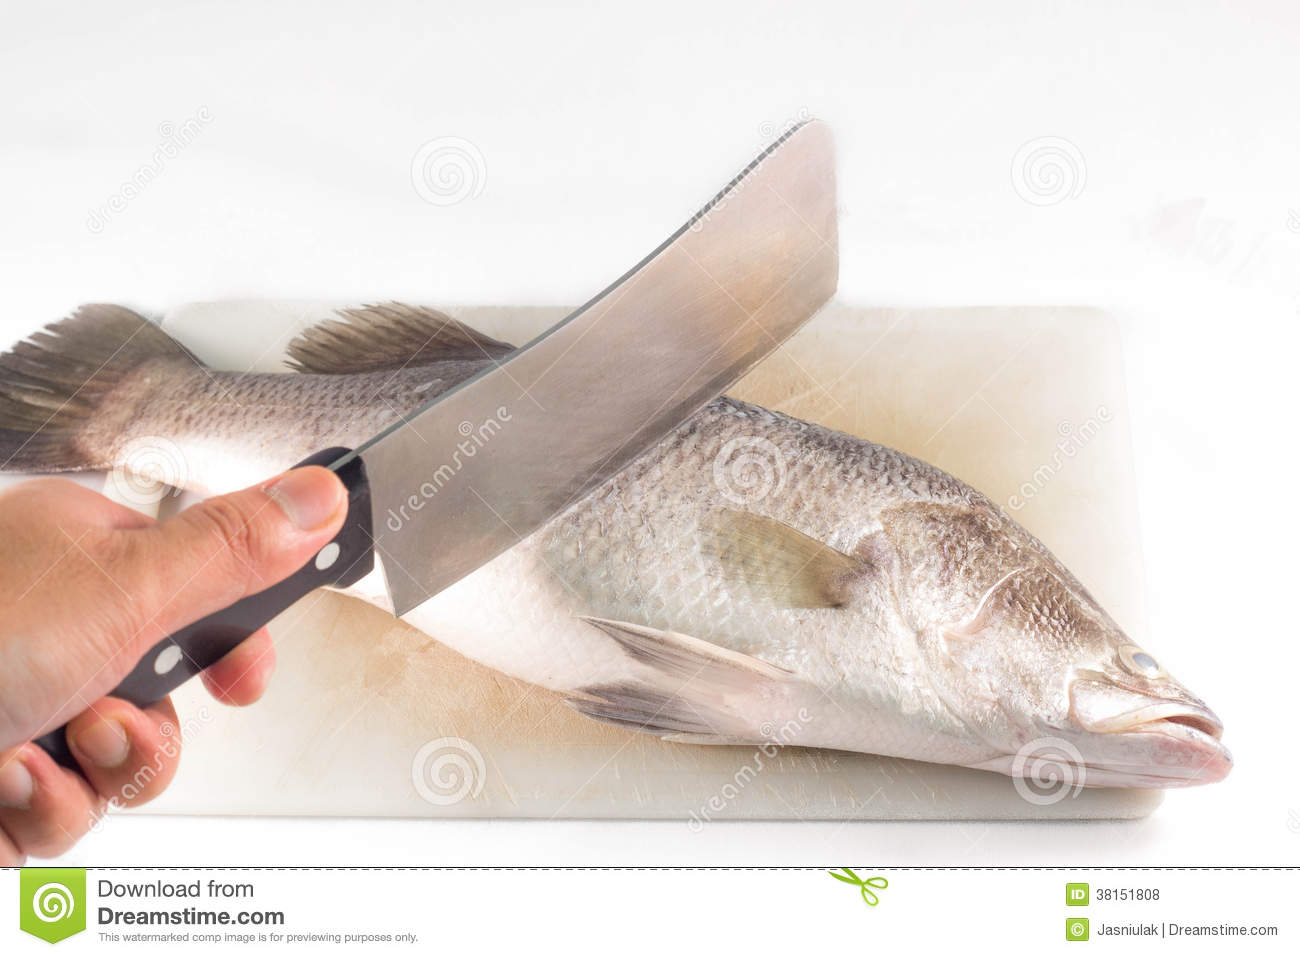 Cutting Fish With A Knife On Cutting Board. Royalty Free Stock Photos - Image: 38151808